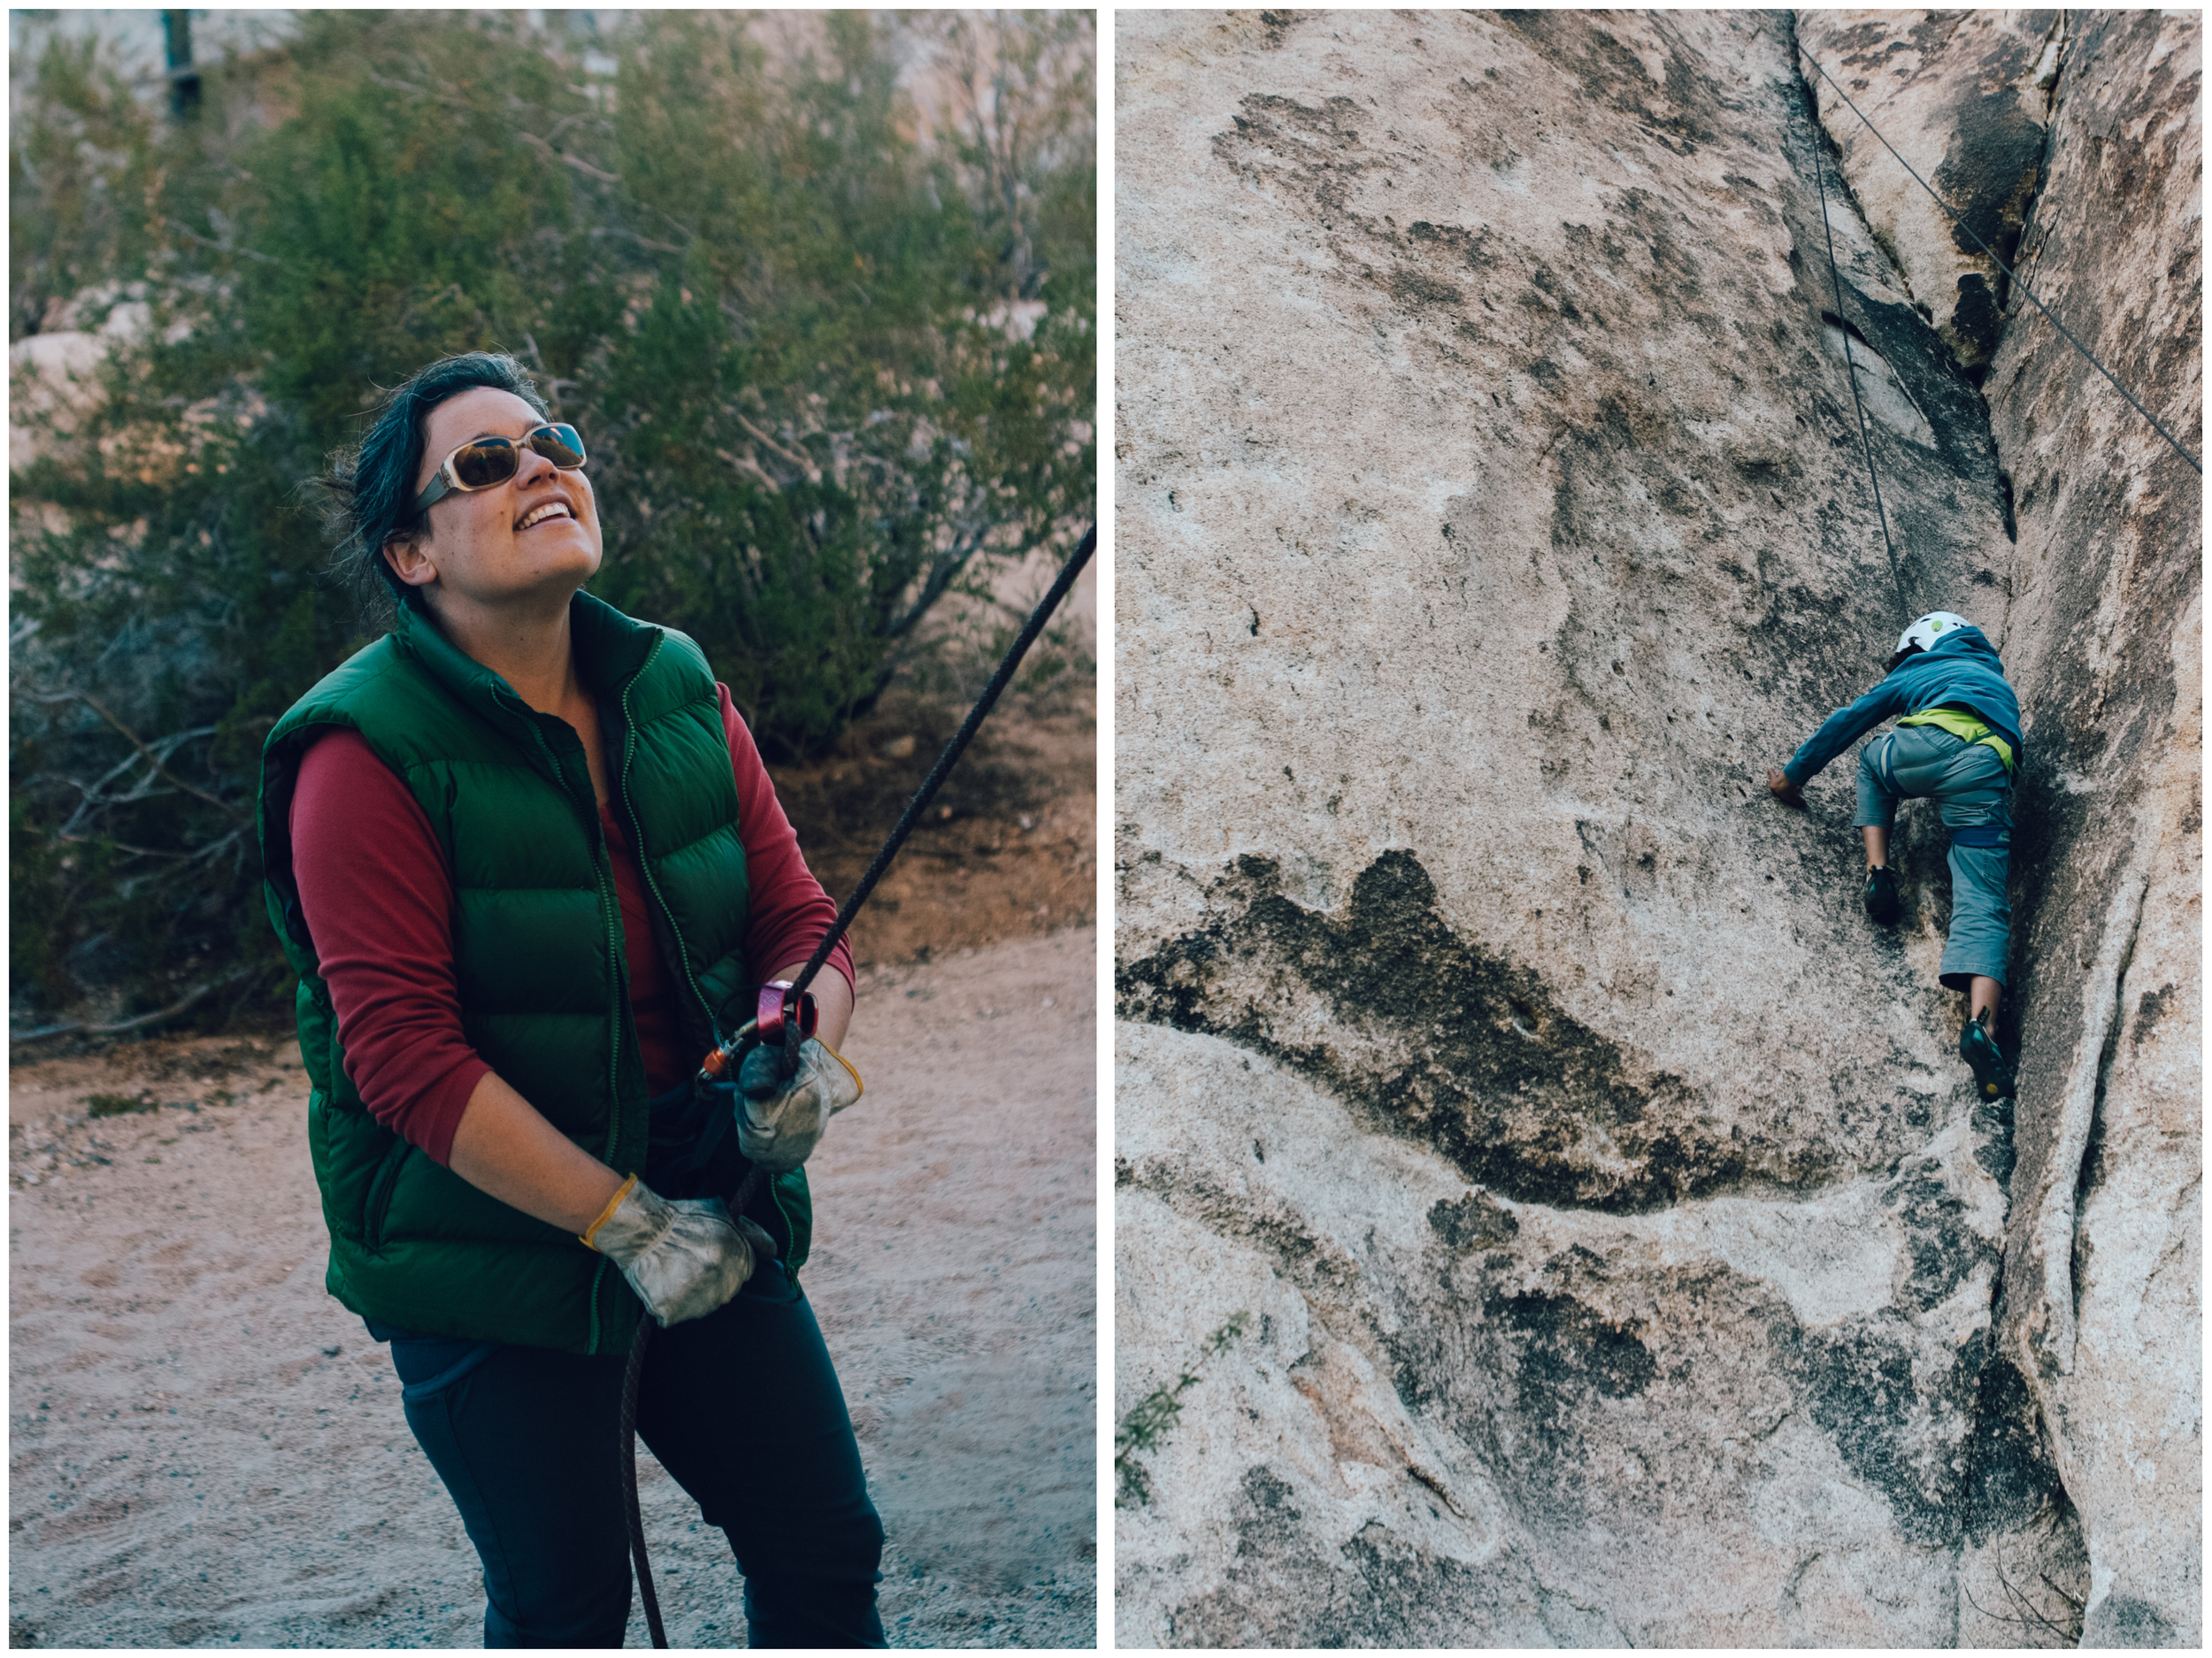 Belaying Alex on his first outdoor climb! It's an honour to introduce friends and family to a sport we love so much (photos by Isabelle Lauzon).